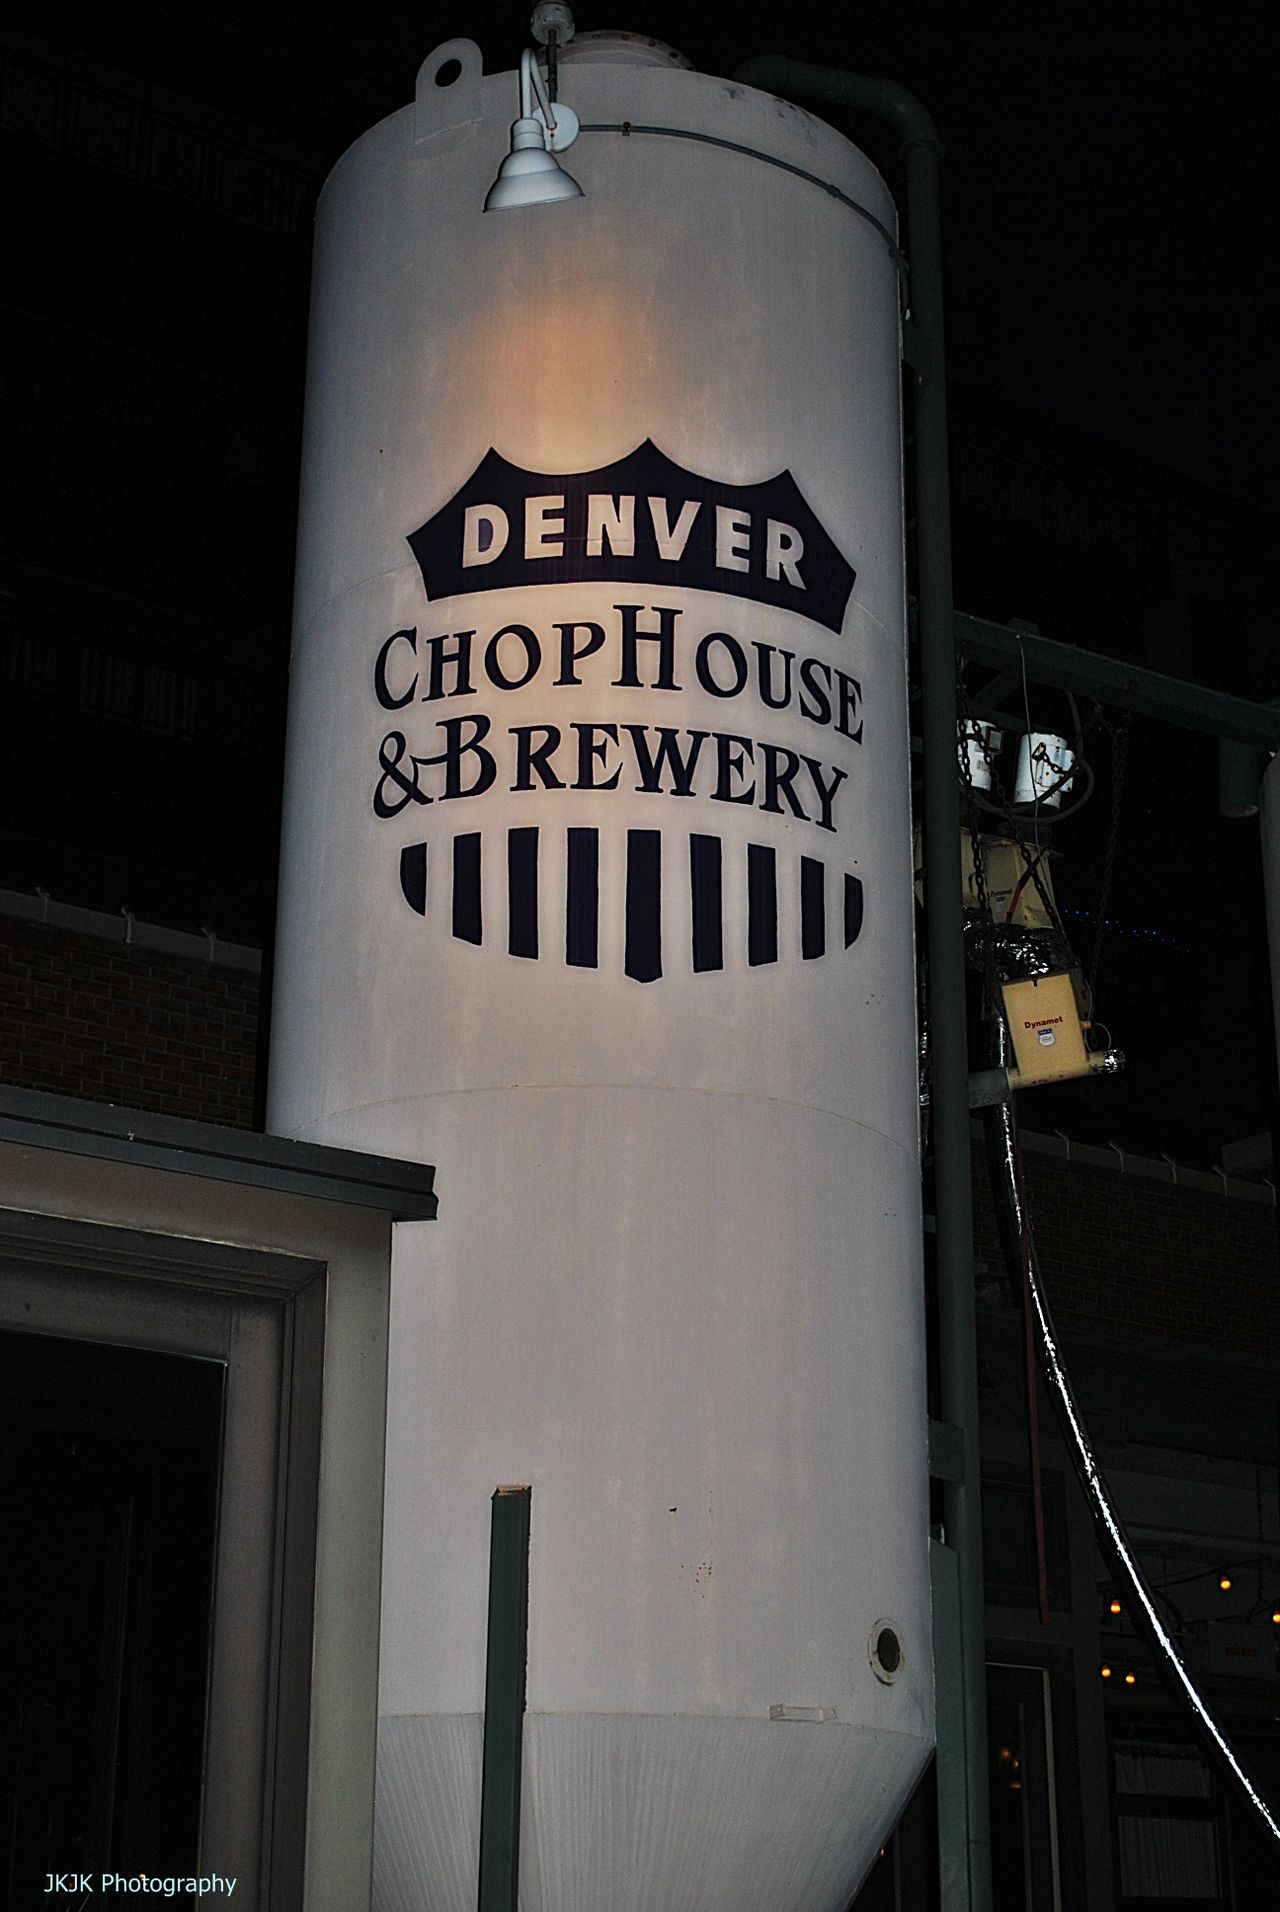 Adventure Adventure Buddies Architecture Bestfriends Boyfriend Brewery Chophouse City City Life Colorado Denver Eye4photography  Having Fun Illuminated Just The Two Of Us Vacation